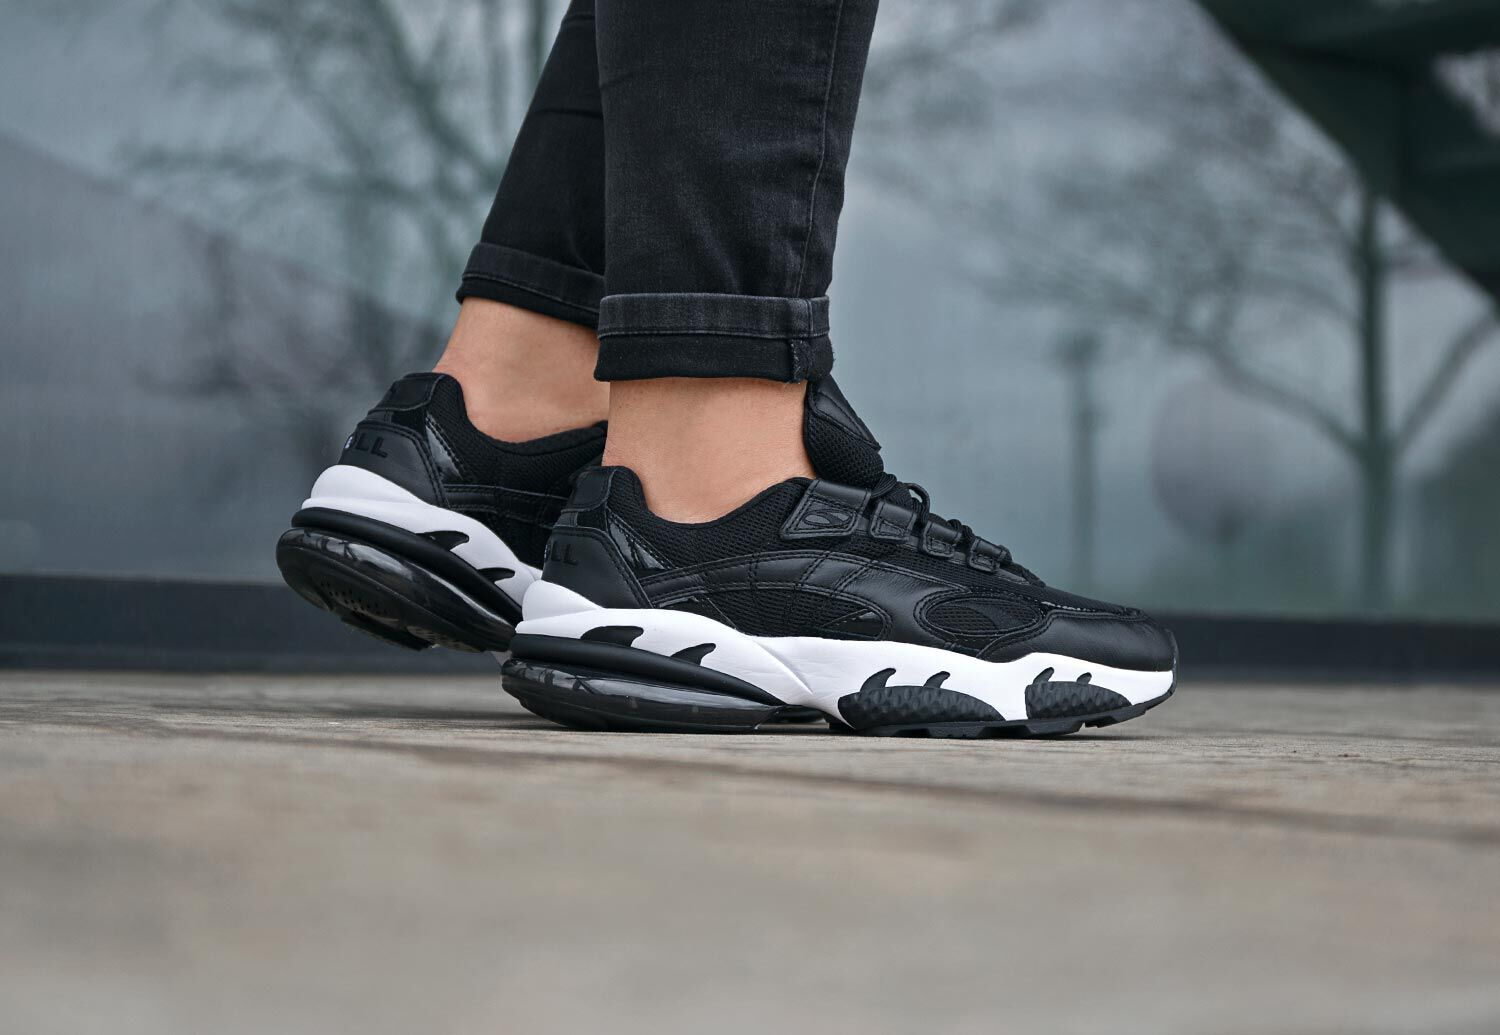 En general caloría Ministerio  Puma Cell Venom Reflective - Sneakers Low at Stylefile